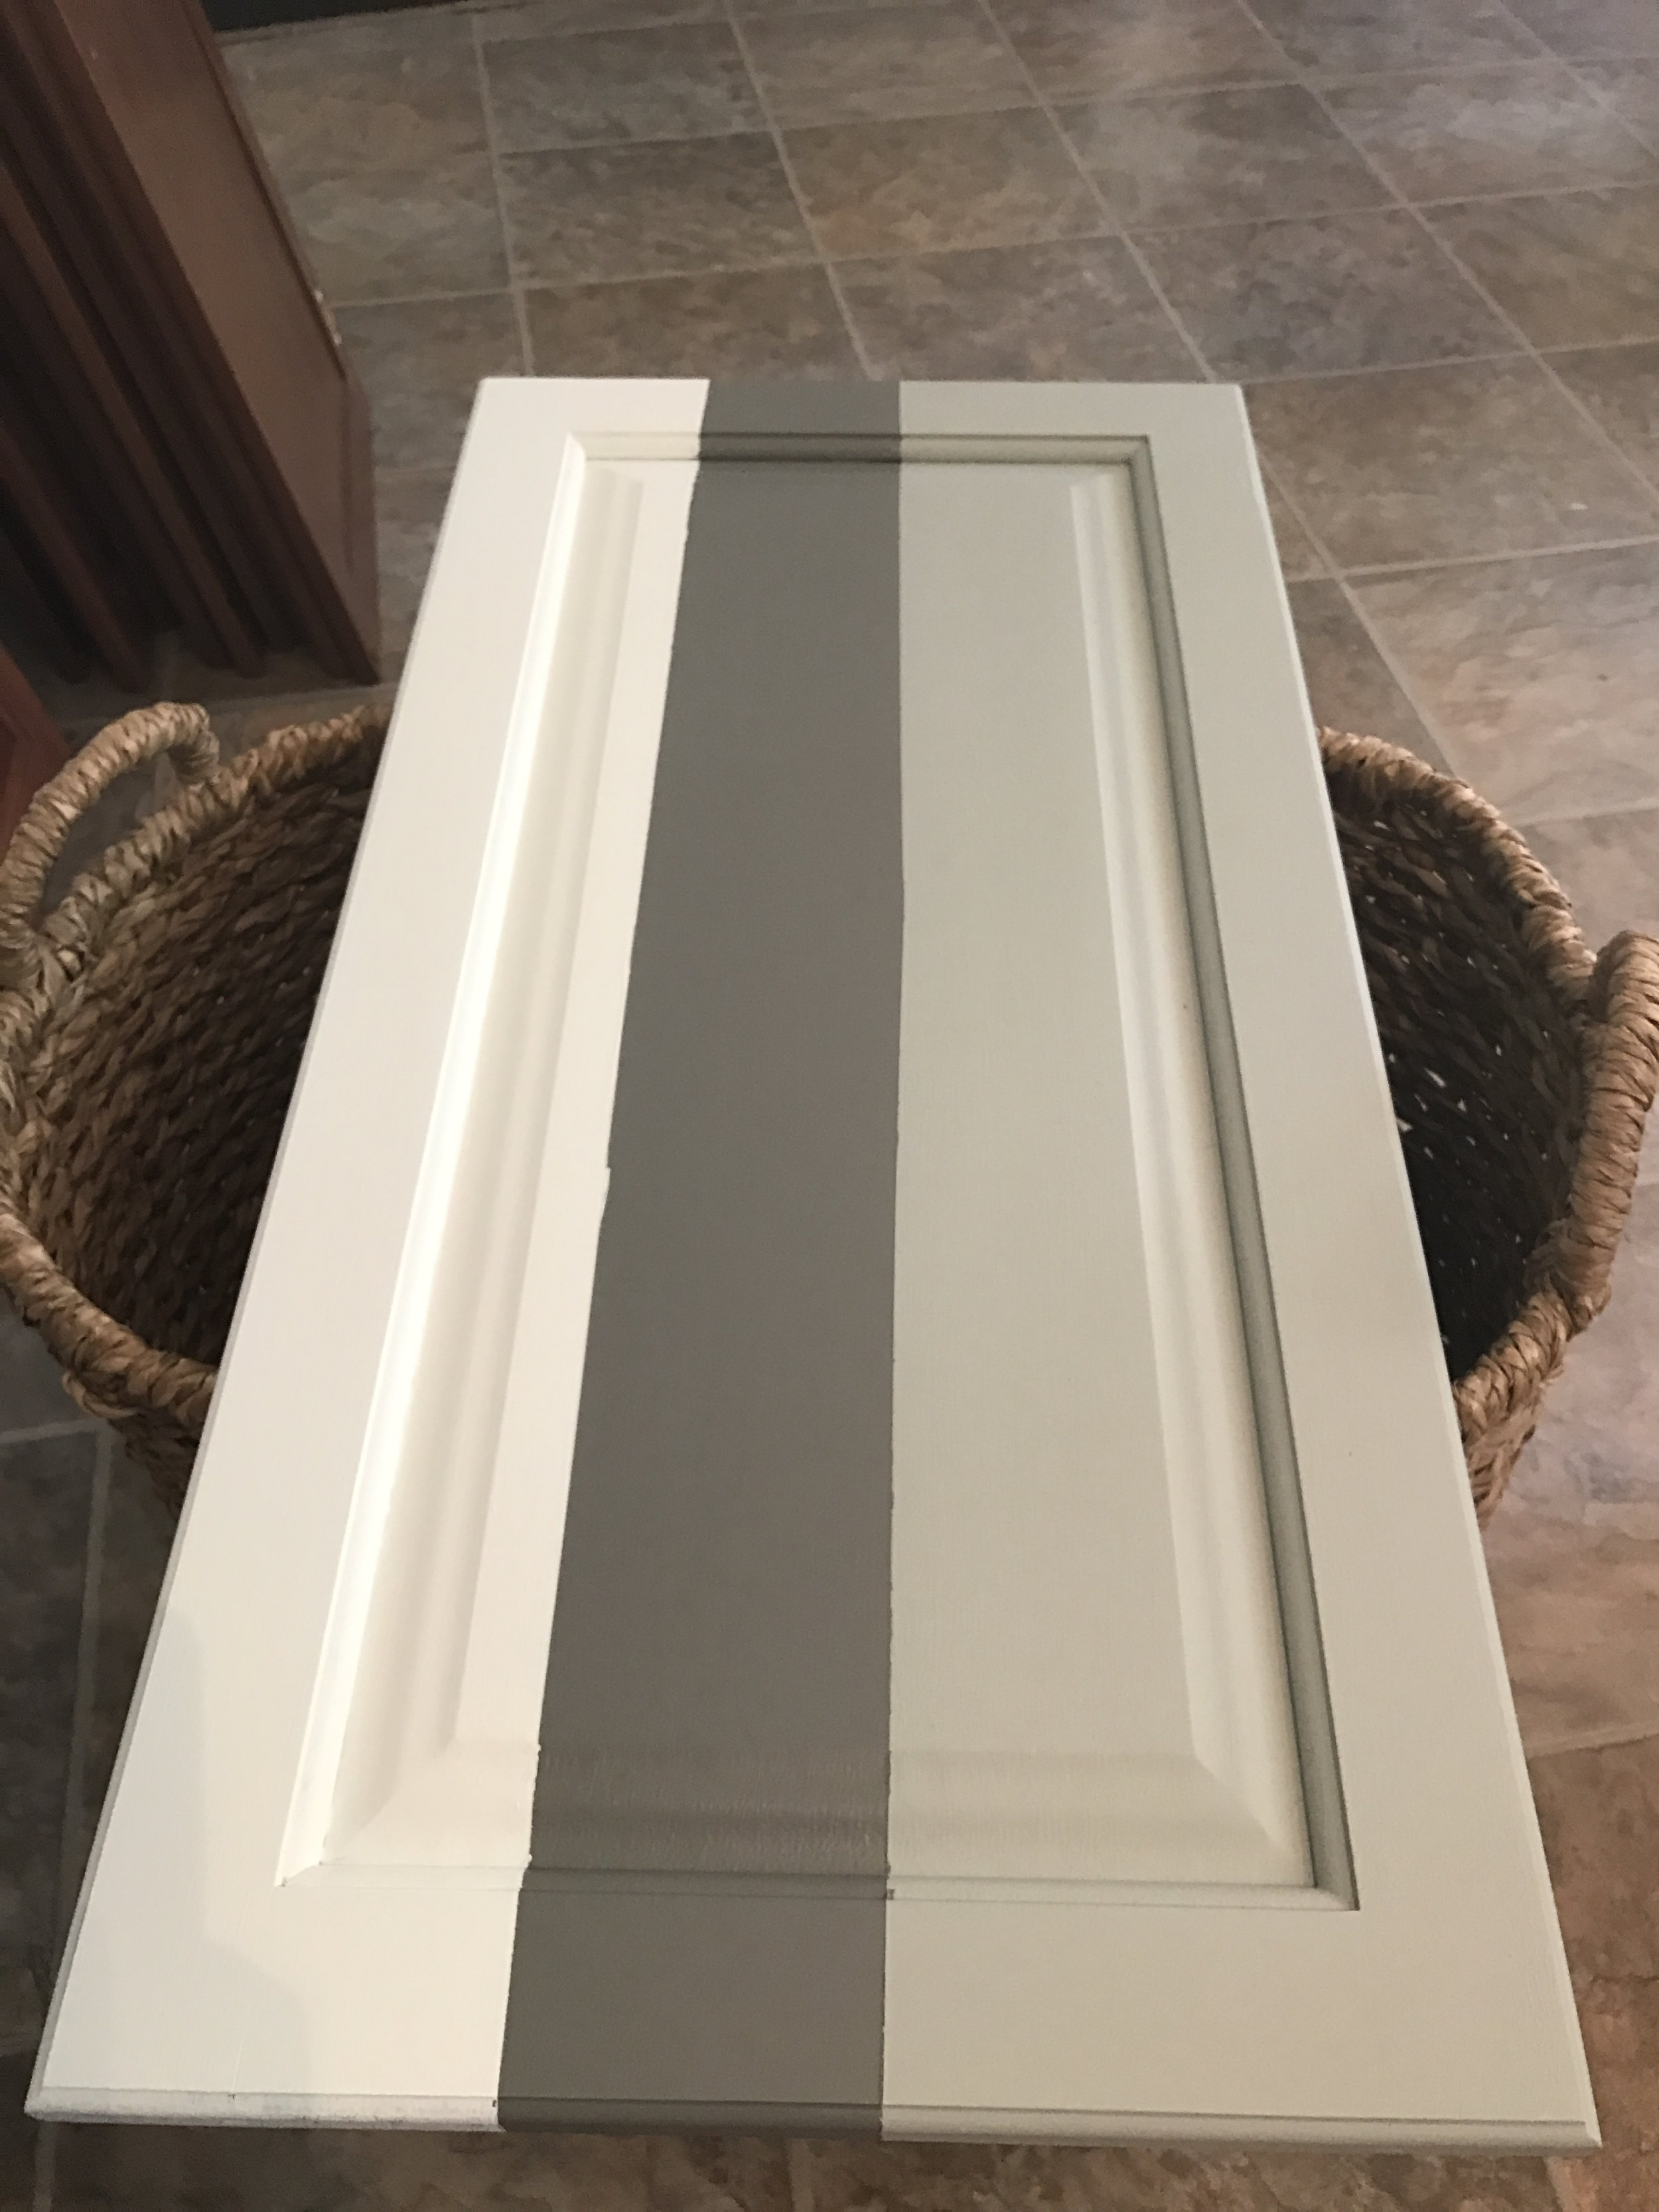 Painted_Kitchen_Cabinets_Paint_Test_Swatches.JPG